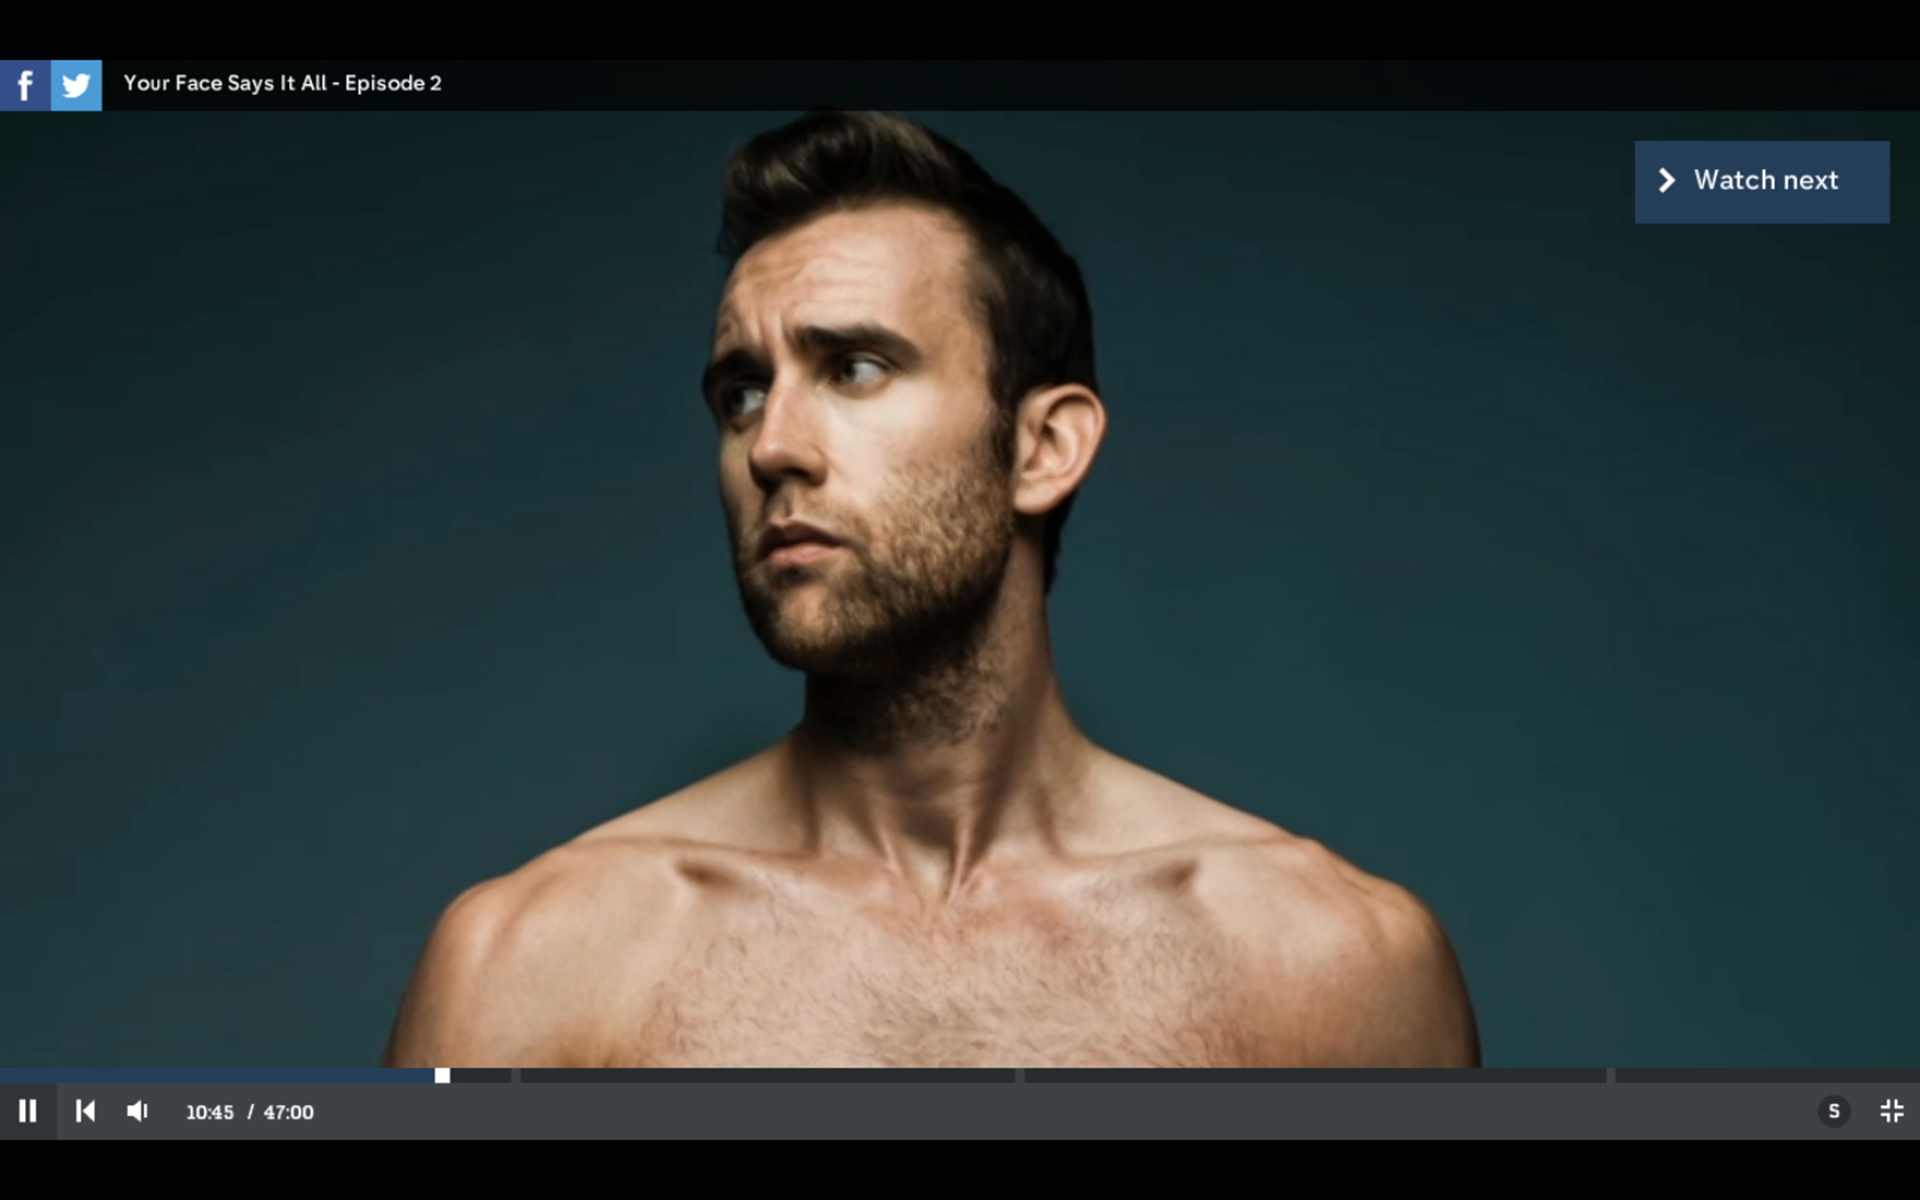 08_JSIN_MatthewLewis_YourFaceSaysItAllUK_October16